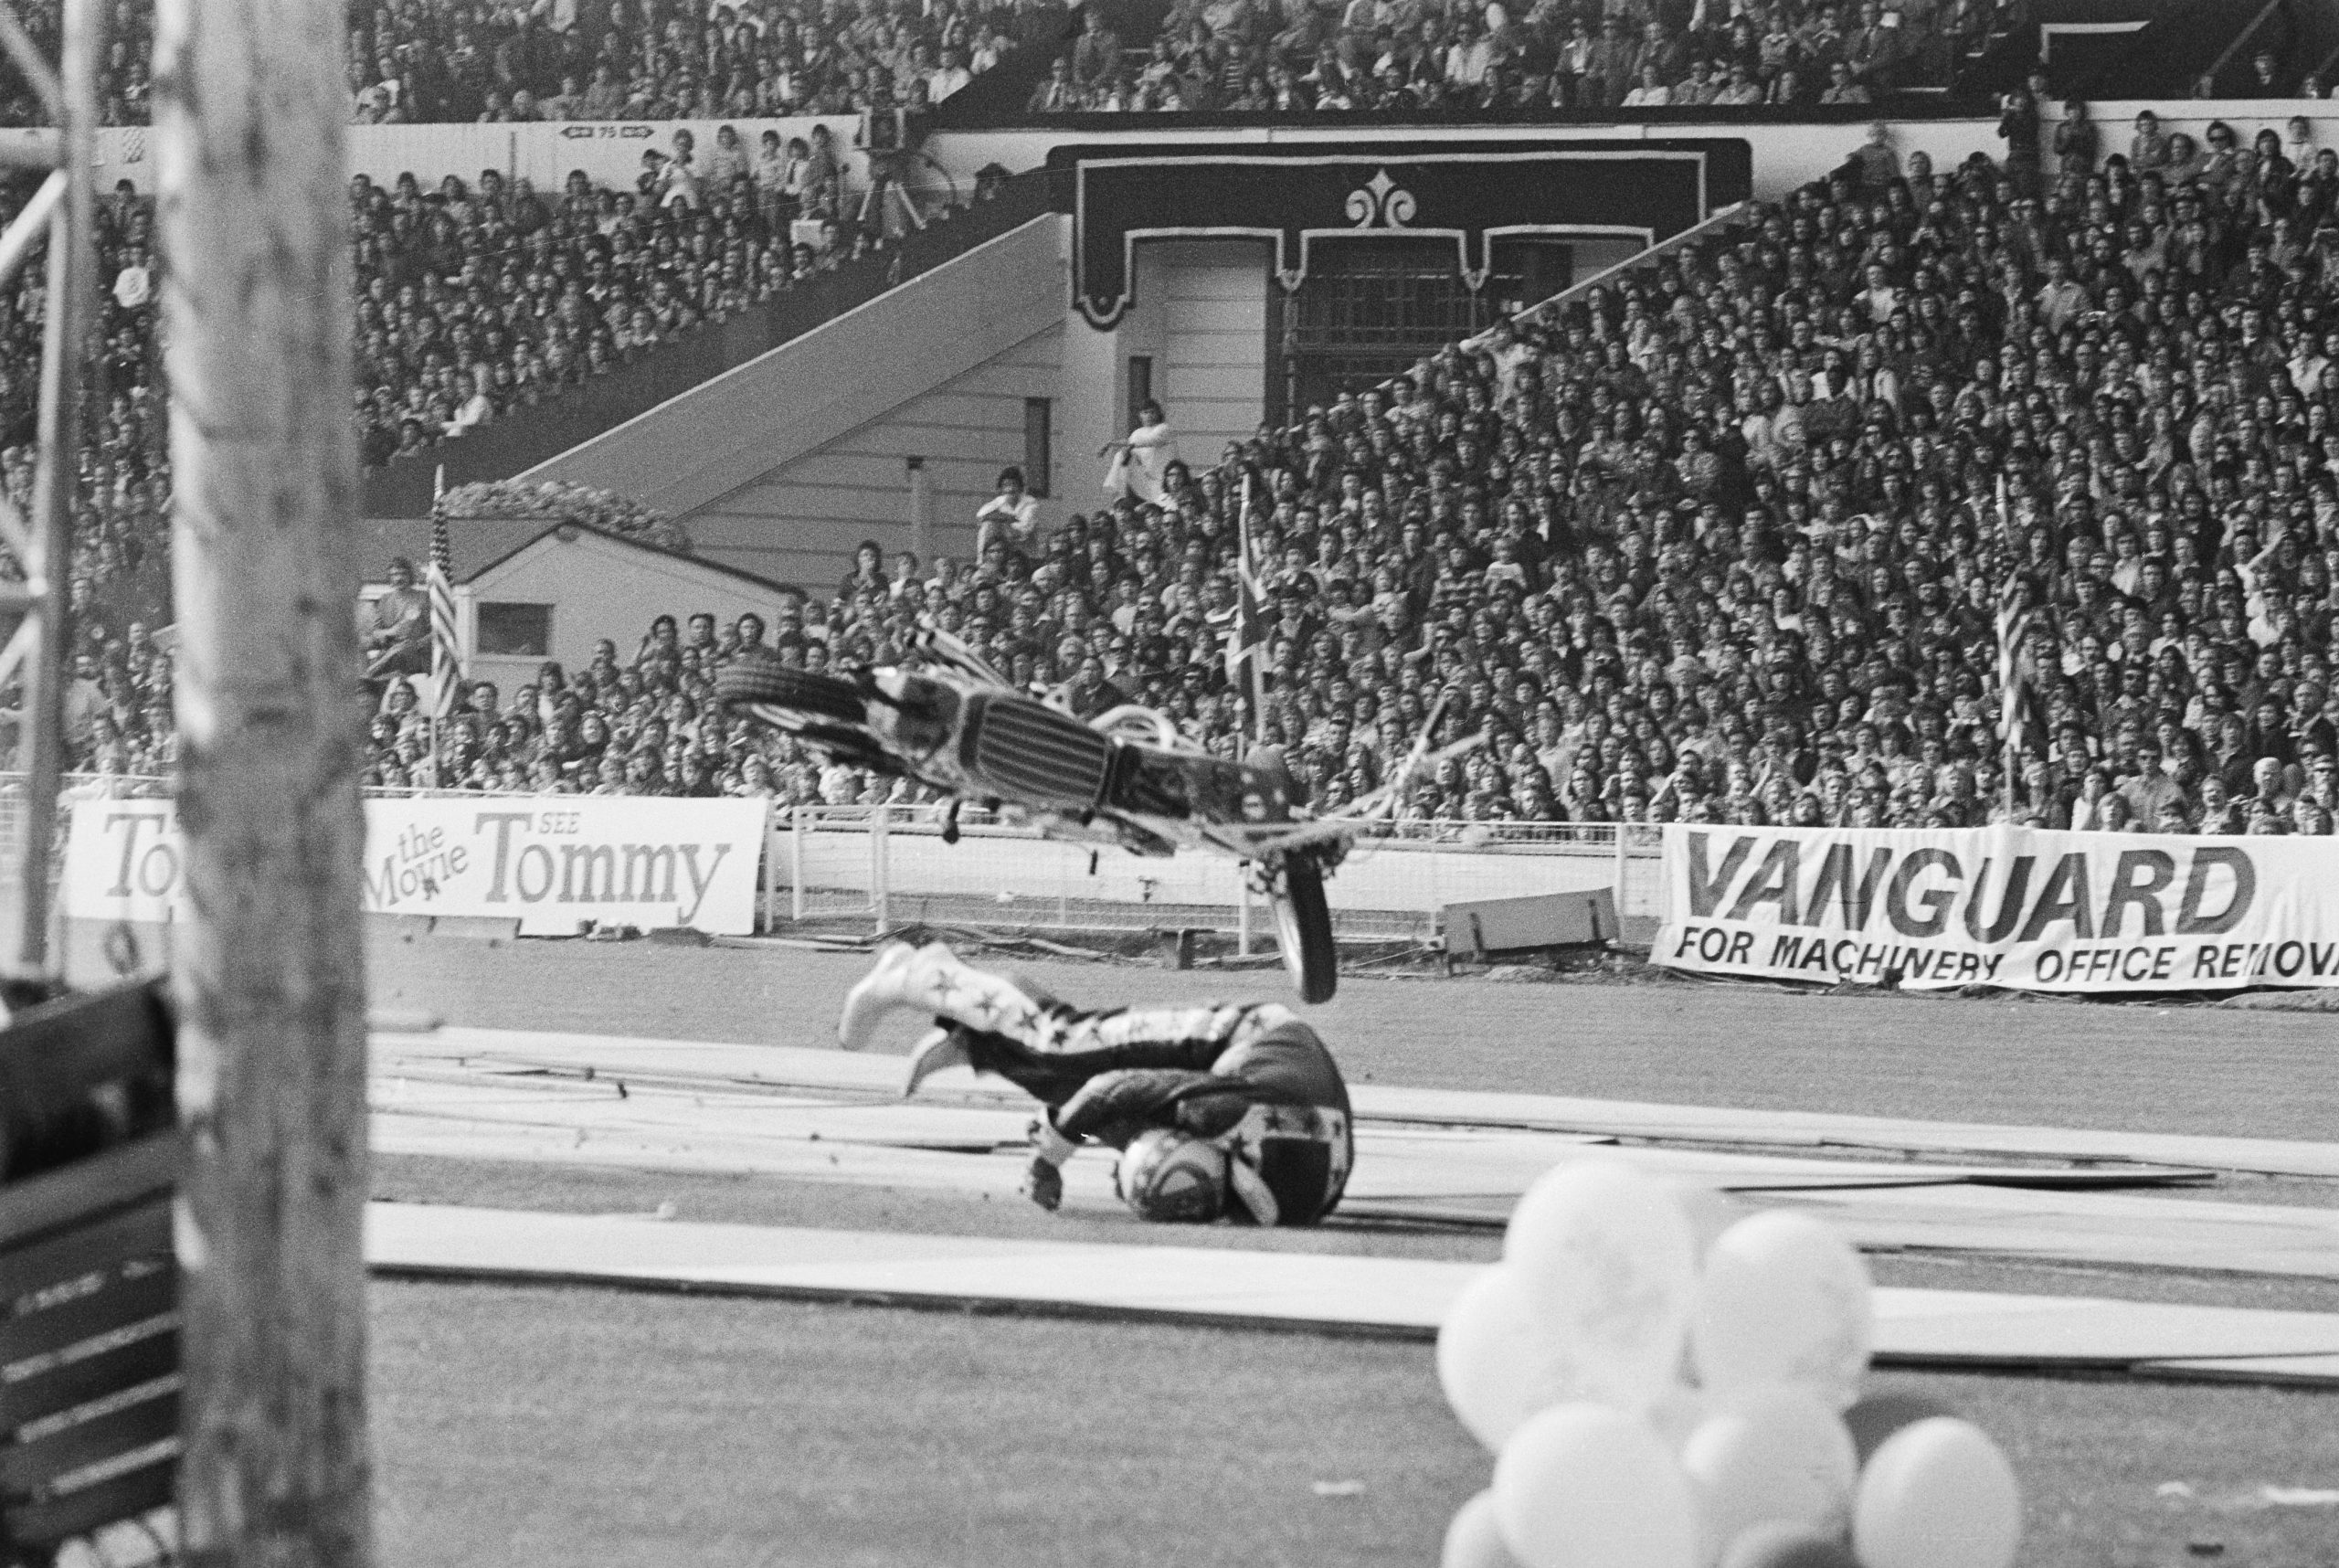 Evel Knievel Landing off his Motorcycle